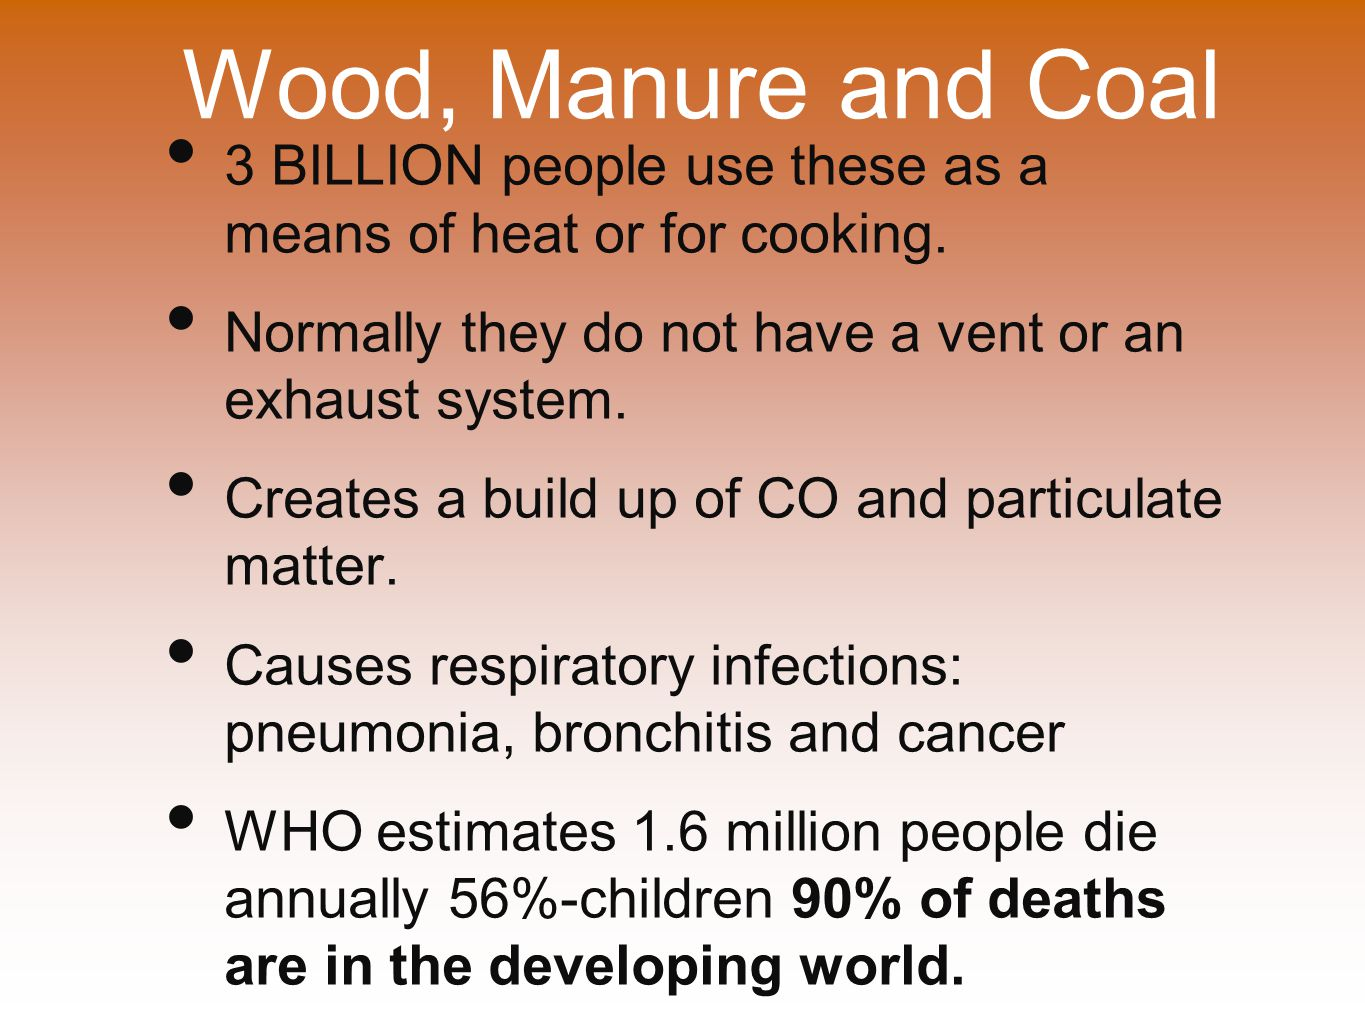 Wood, Manure and Coal 3 BILLION people use these as a means of heat or for cooking. Normally they do not have a vent or an exhaust system.